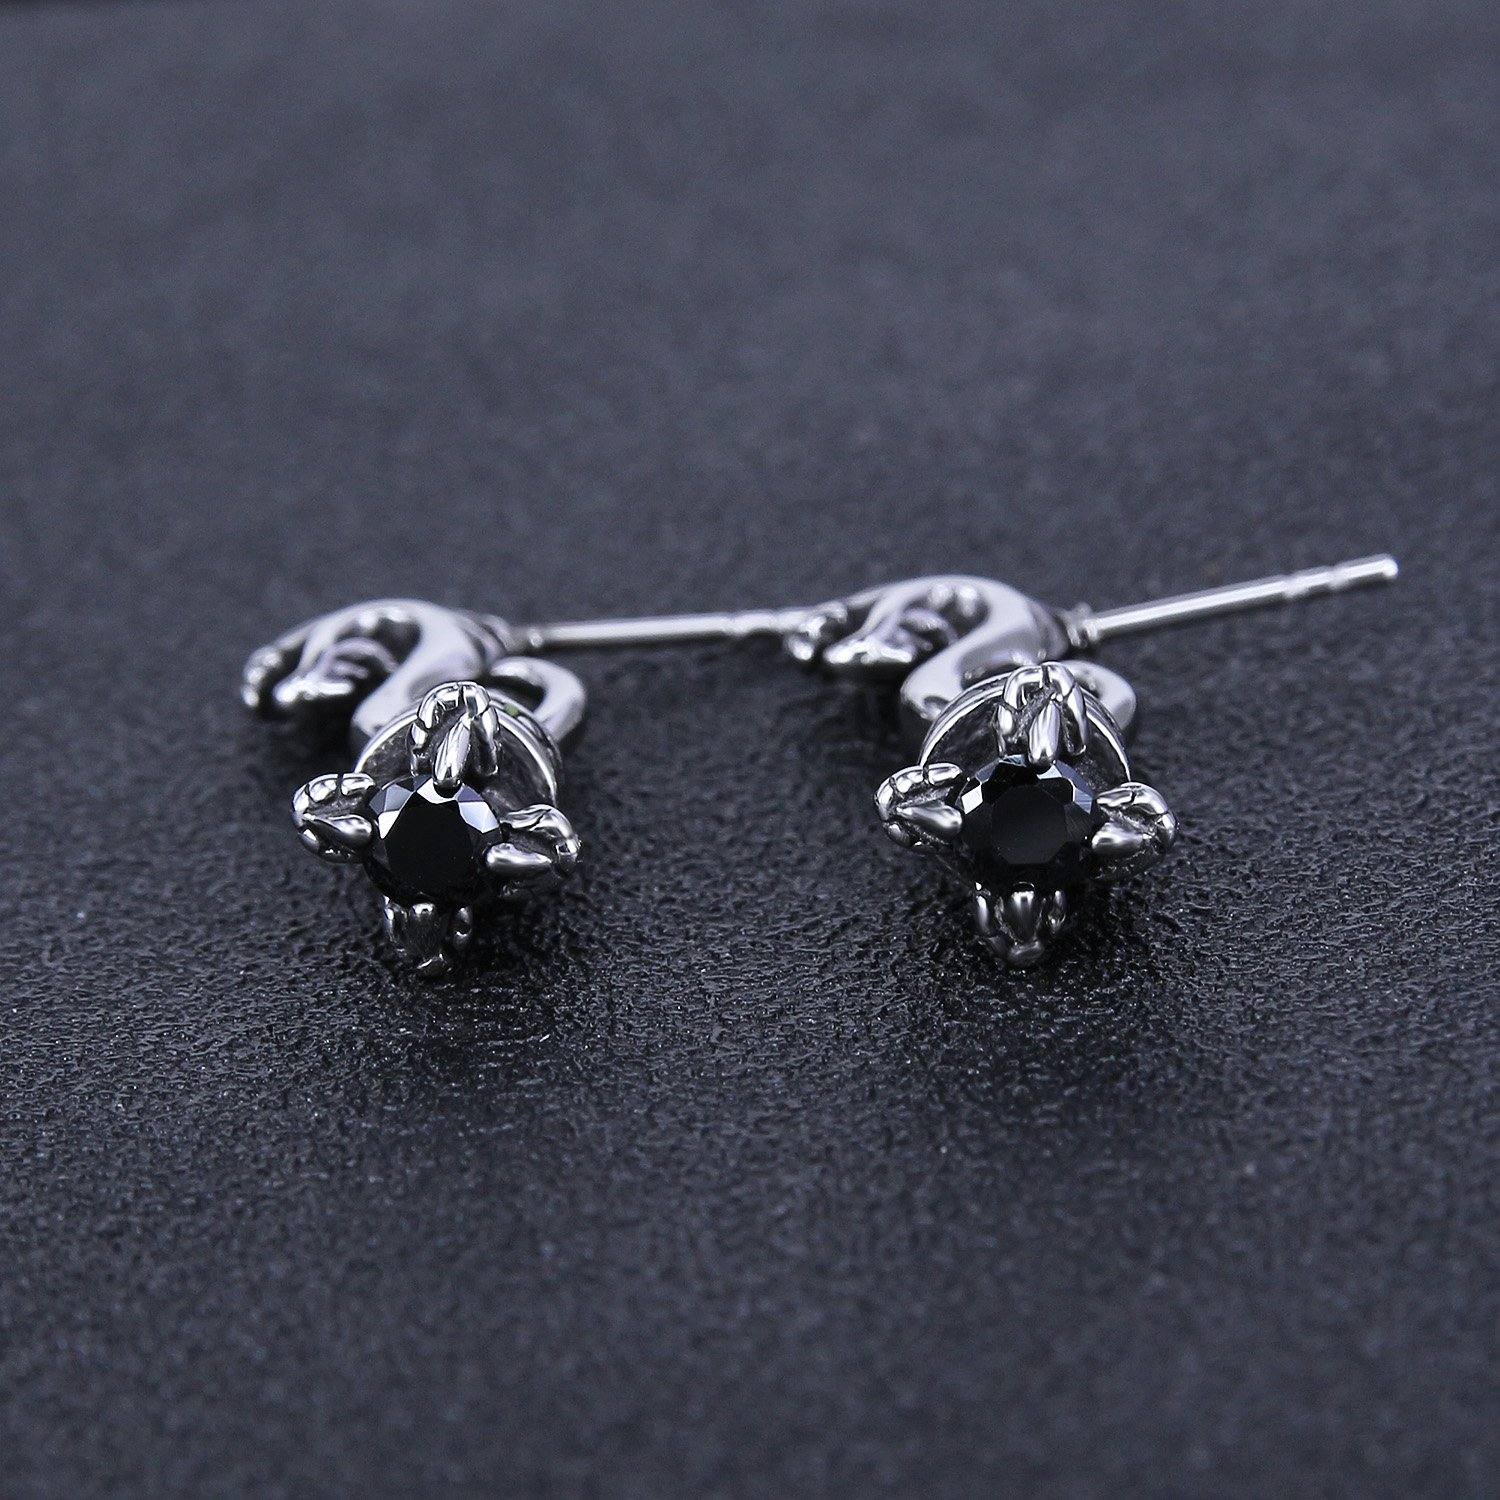 Vintage Sword Skull Rose Drop Dangle Stud Earrings 316L Surgical Steel Punk Cartilage Earrings Mens Women (Dragon Style) by PiercingCool (Image #5)